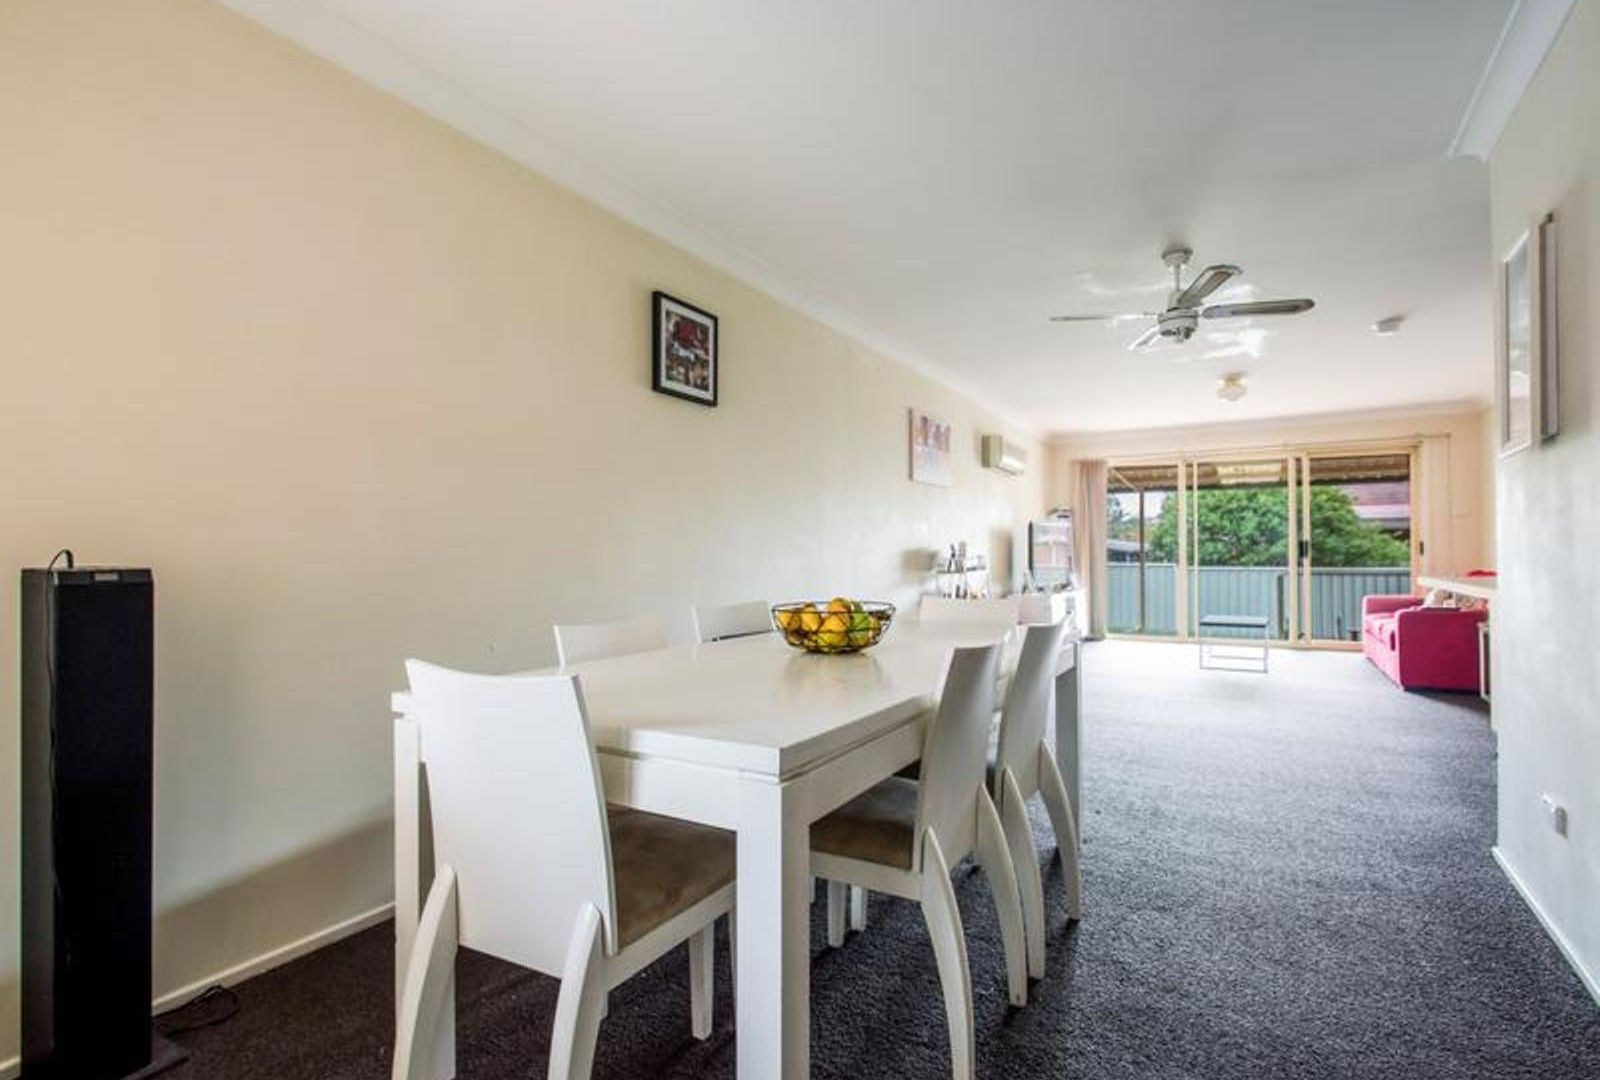 13/14A Stapley Street, Kingswood NSW 2747, Image 1